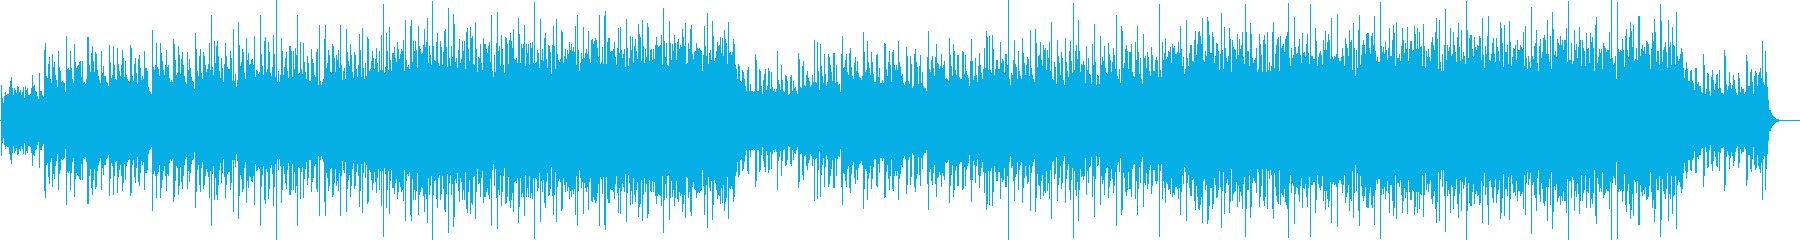 Transparent, refreshing and bright piano pop's reproduced waveform